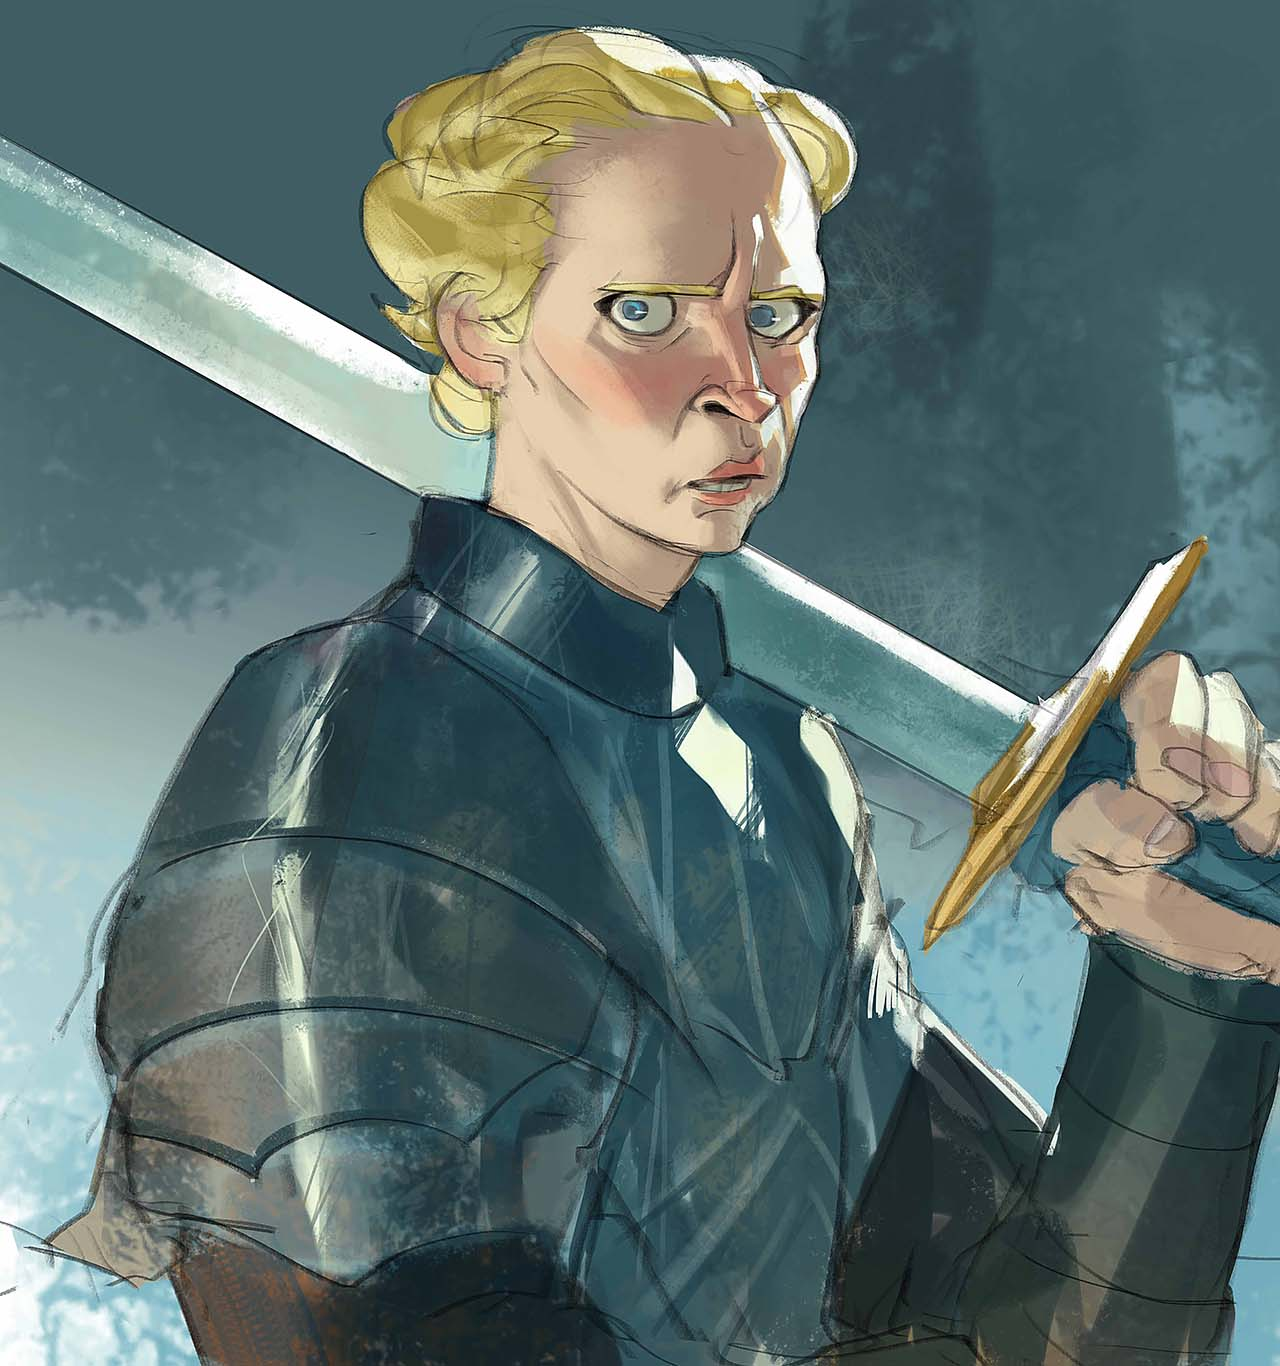 Artist Creates Unique Character Arts From Game Of Thrones – Brienne Of Tarth Character Art By Ramón Nuñez